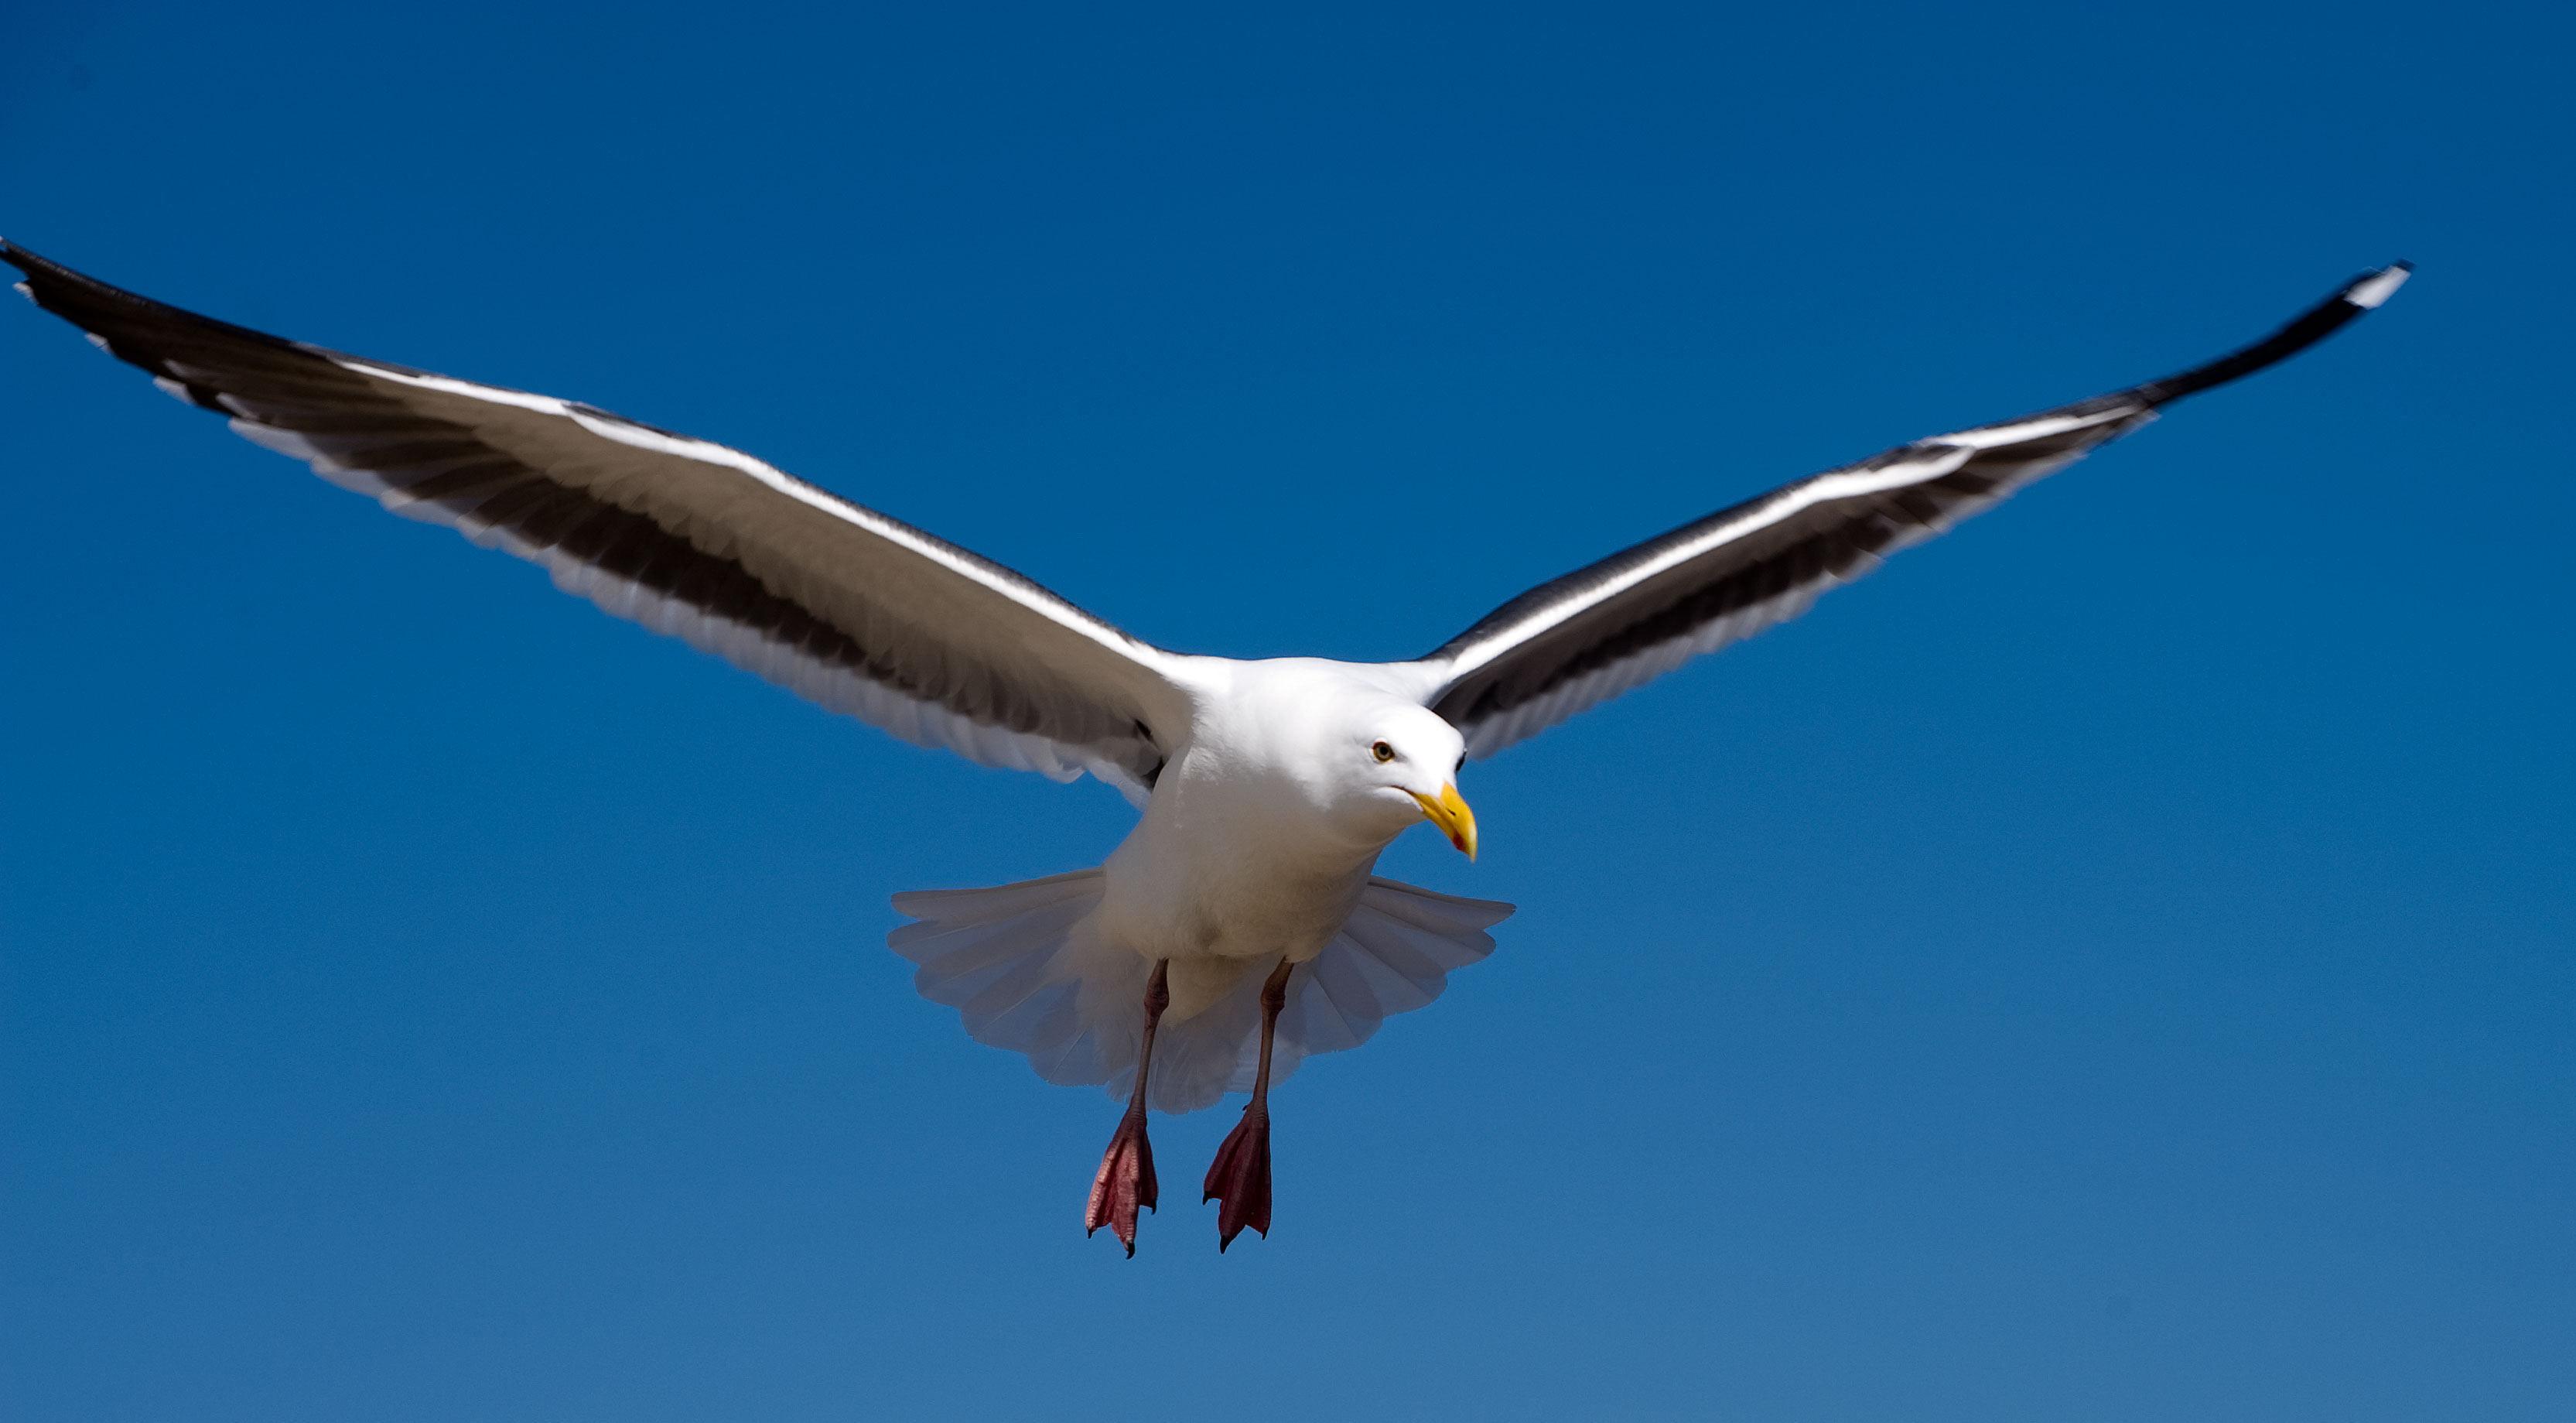 Confessions of a Startup Seagull at andrewchen